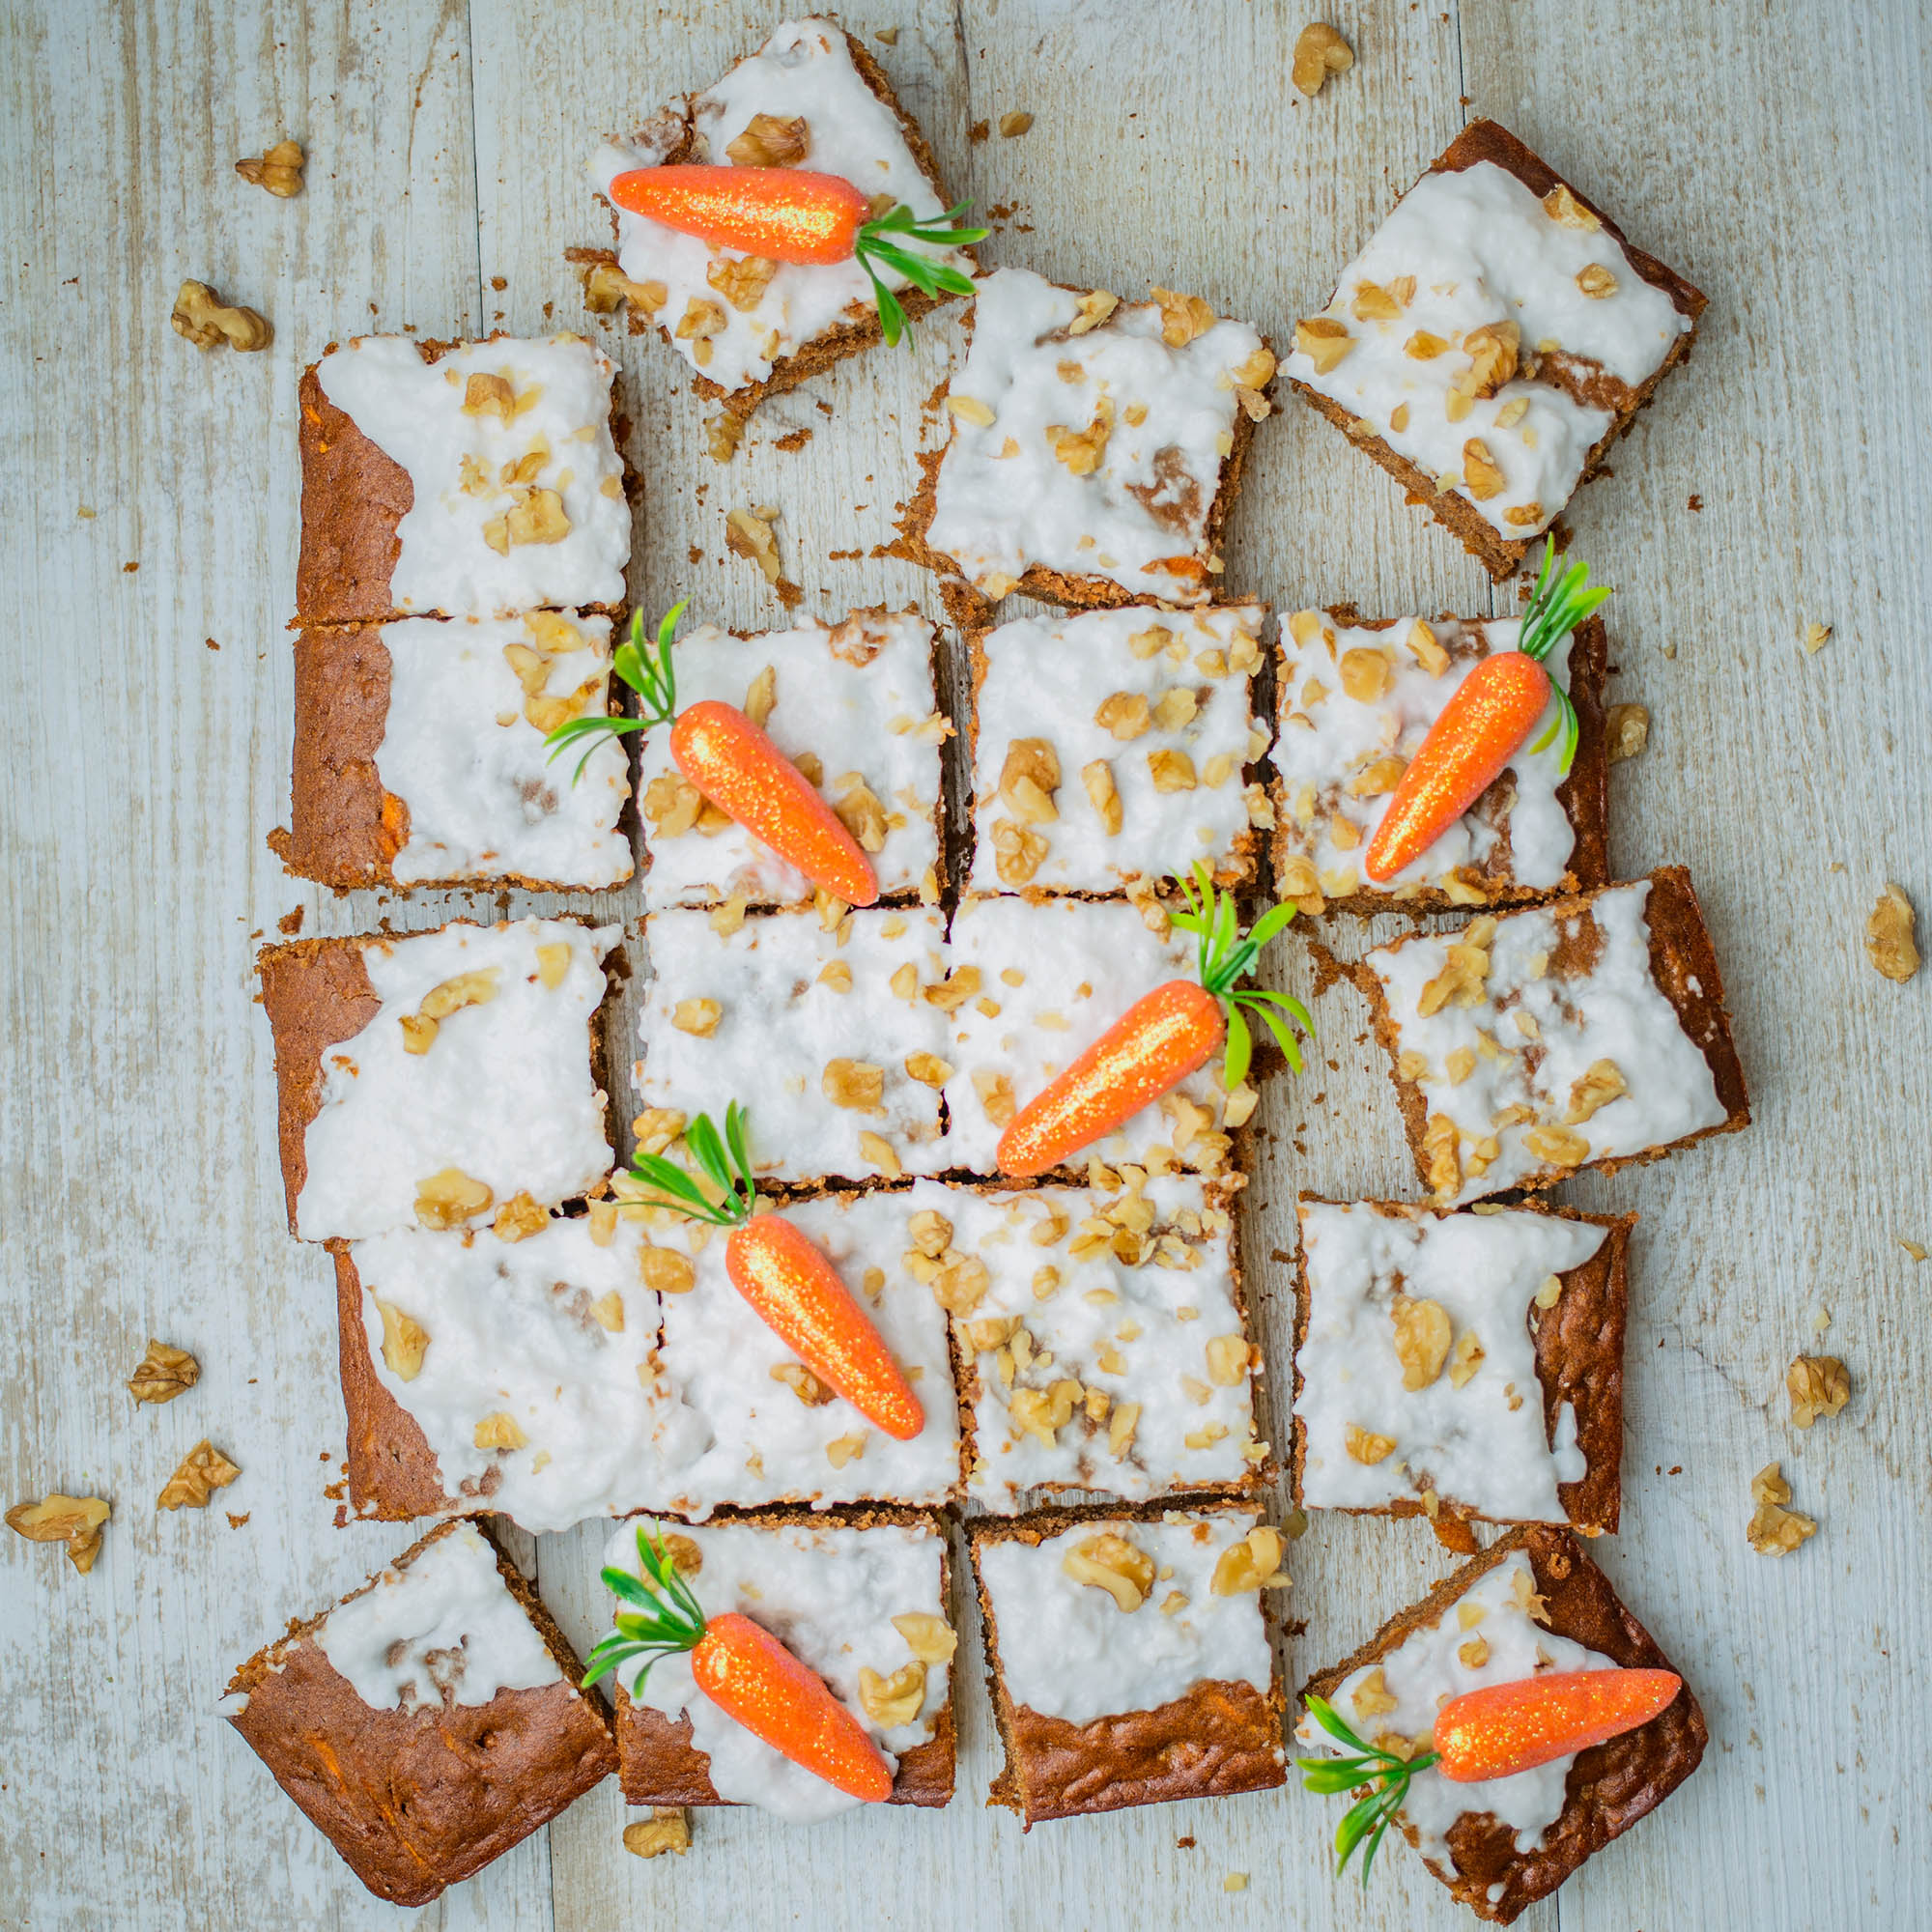 Vegan Carrot Cake Slice with Coconut Yogurt Frosting